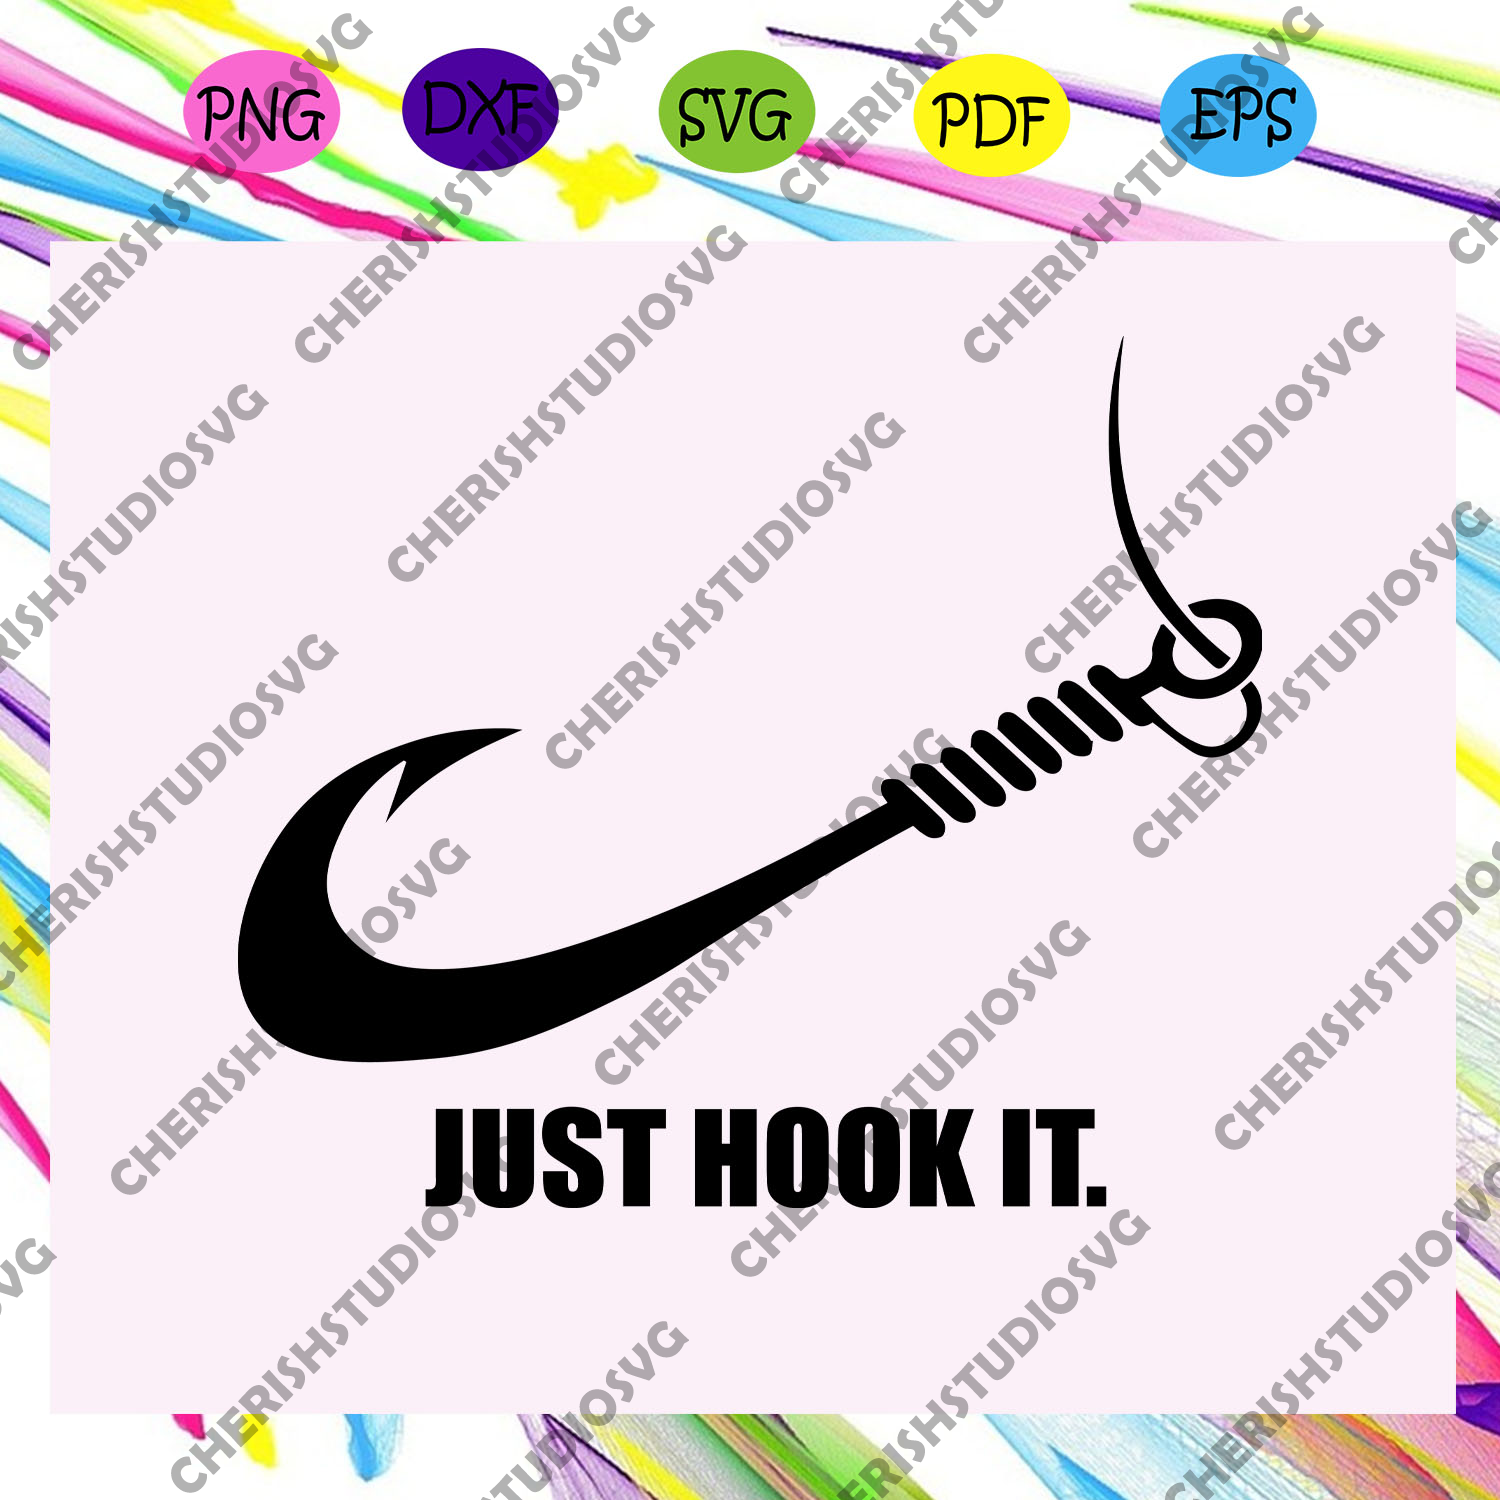 Just hook it, nike, nike svg, nike clipart, nike lover svg, nike lover gift, nike shirt, vintage nike, nike logo svg, nike sweat,trending svg, Files For Silhouette, Files For Cricut, SVG, DXF, EPS, PNG, Instant Download